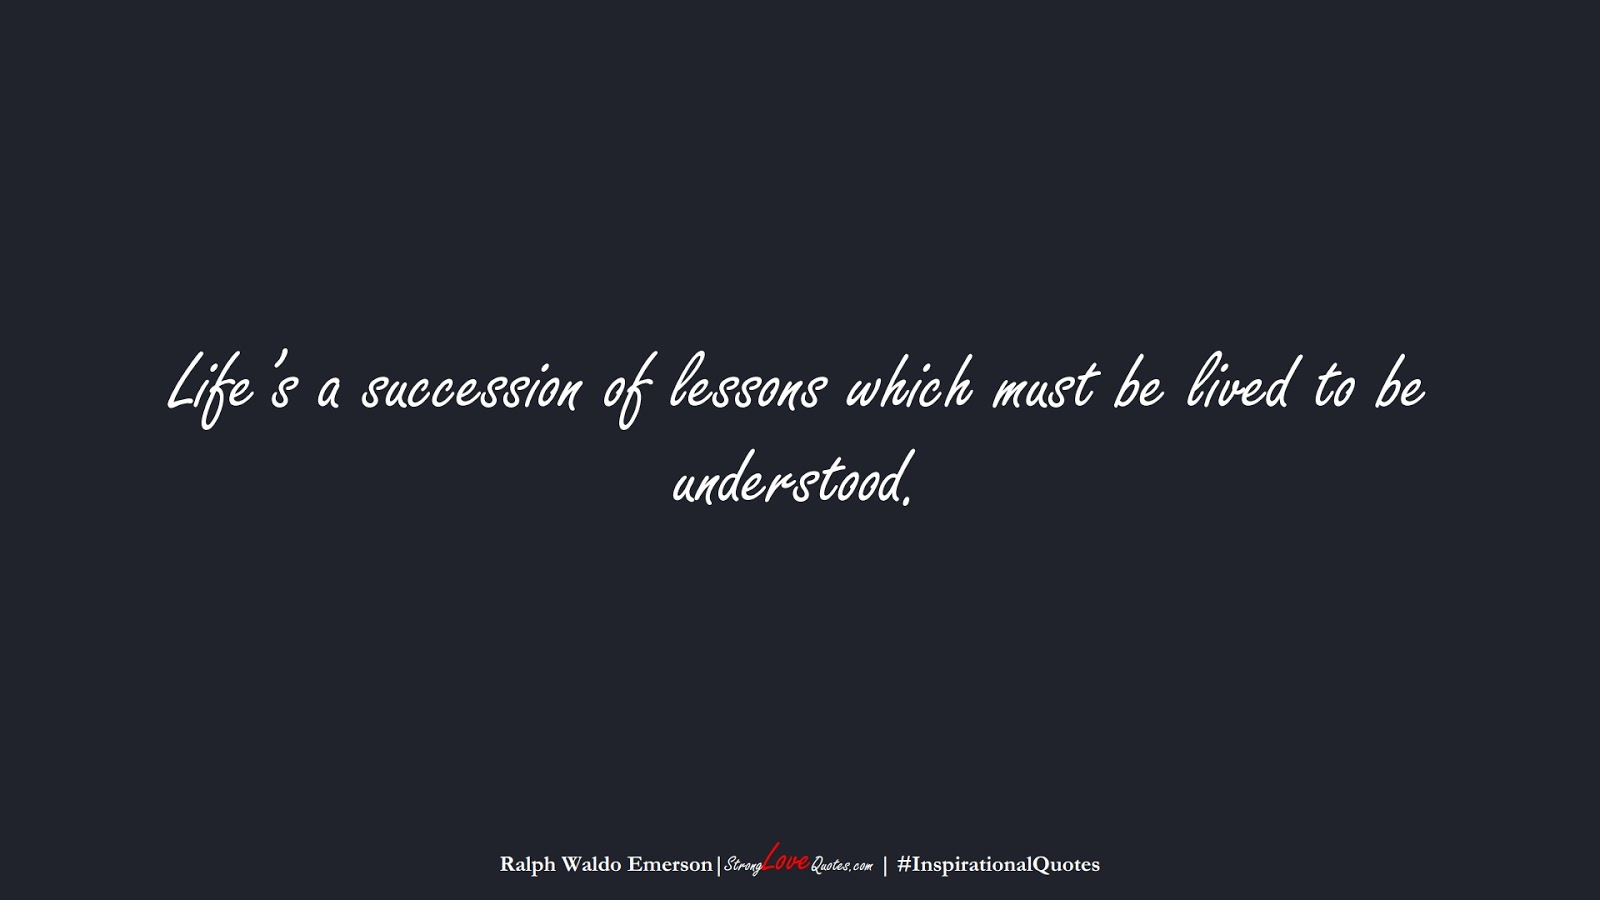 Life's a succession of lessons which must be lived to be understood. (Ralph Waldo Emerson);  #InspirationalQuotes